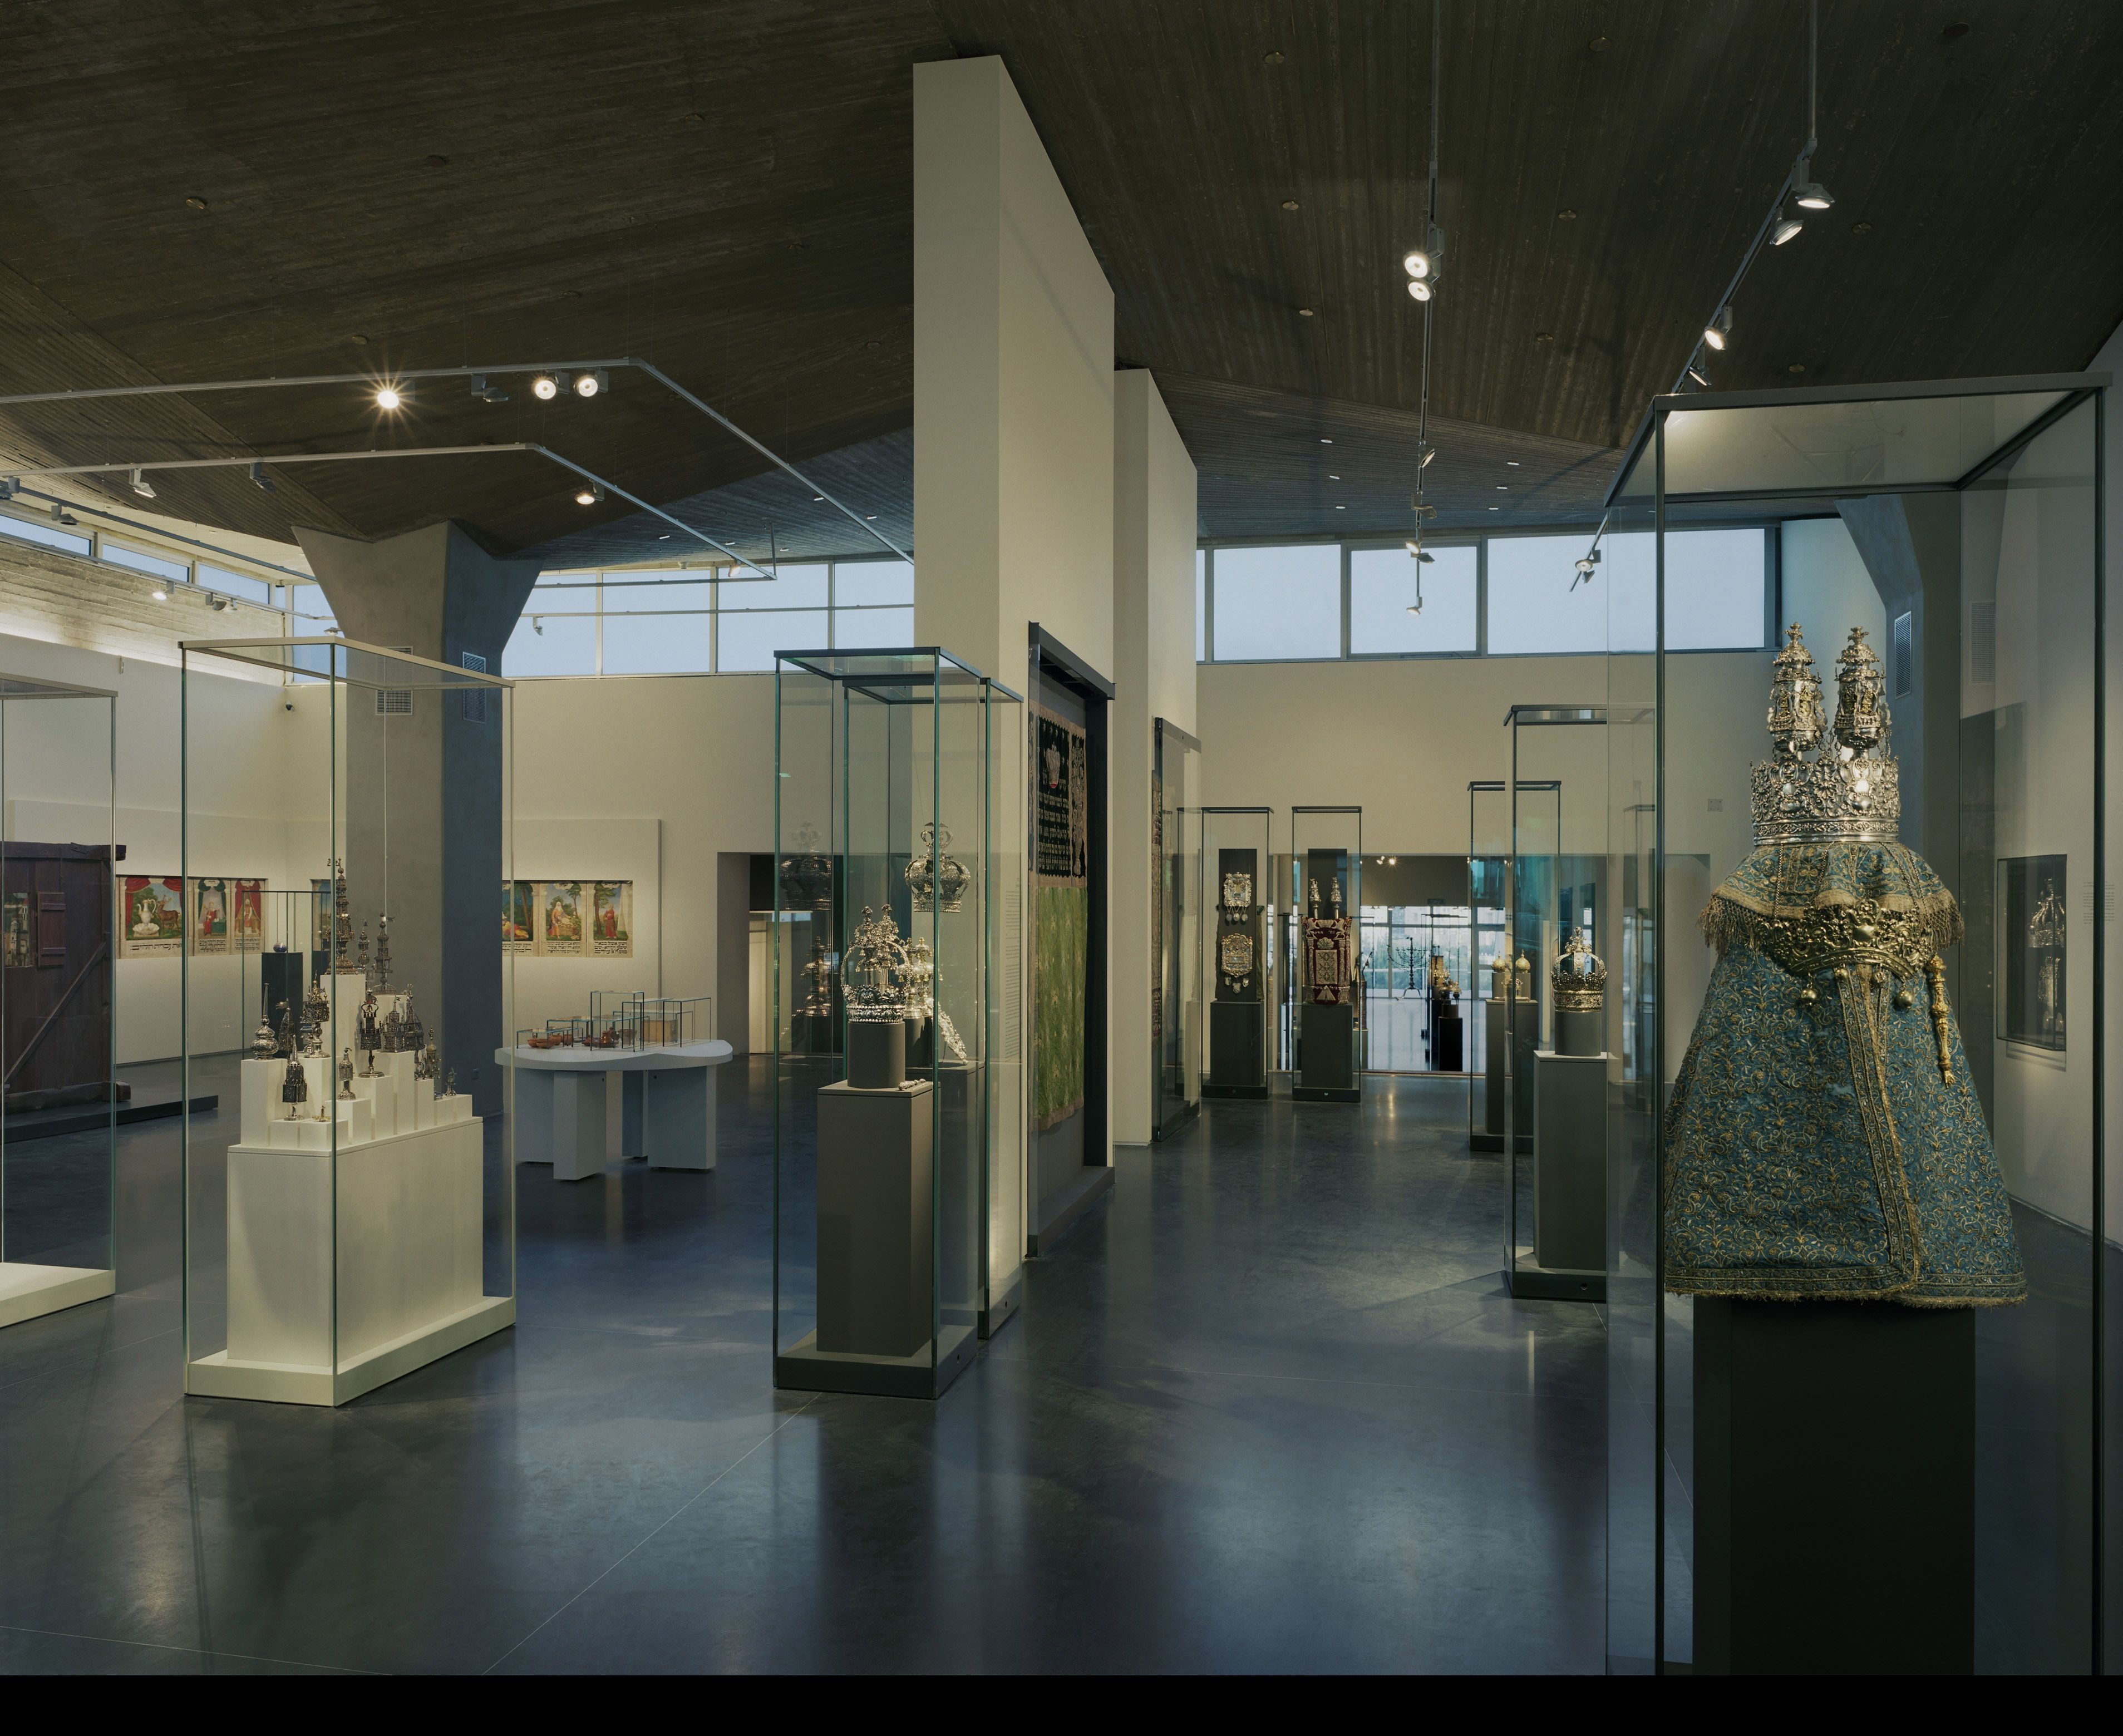 Renewed galleries in the Jack, Joseph, and Morton Mandel Wing for Jewish Art and Life at The Israel Museum, Jerusalem.  (Tim Hursley, courtesy of the Israel Museum, Jerusalem)